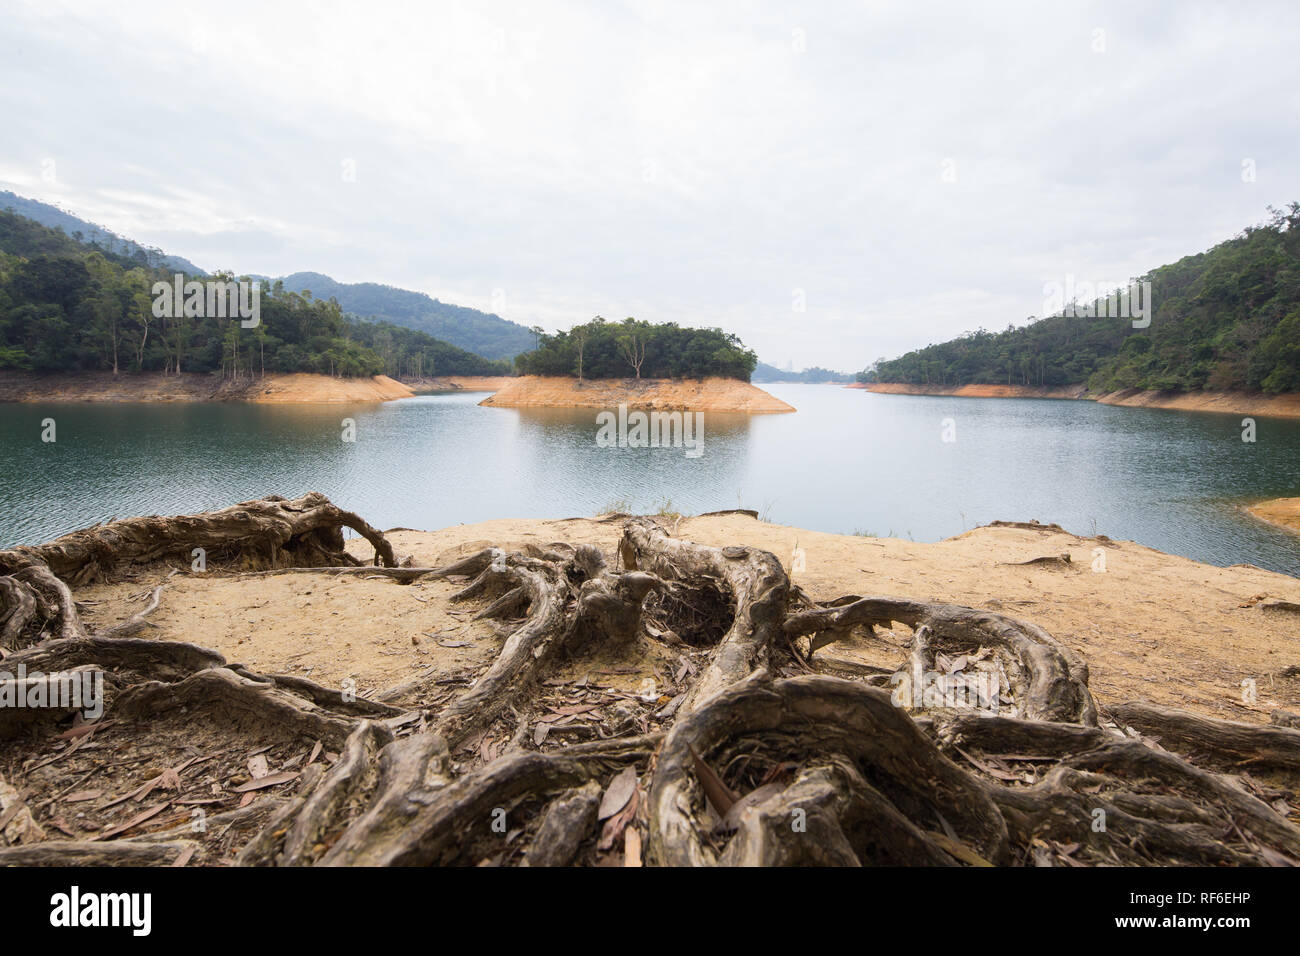 Scenery view of Shing Mun Reservoir from the bank, Hong Kong - Stock Image